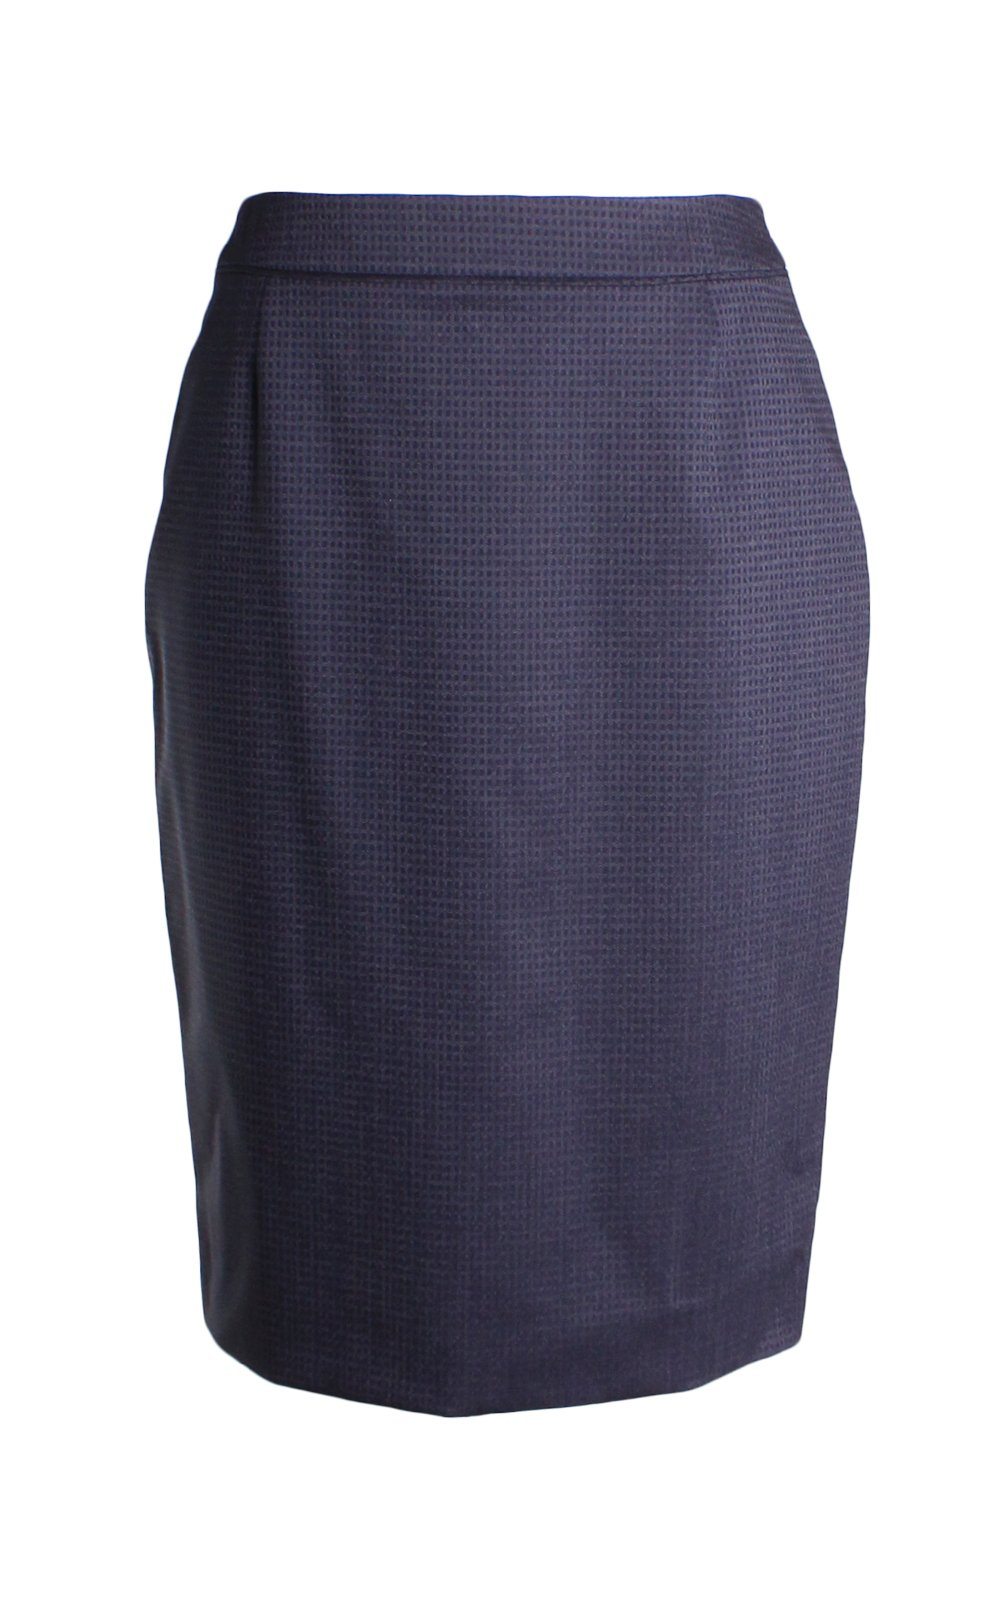 Hugo Boss Vakulea Virgin Wool Pencil Skirt In Pindot Size 4